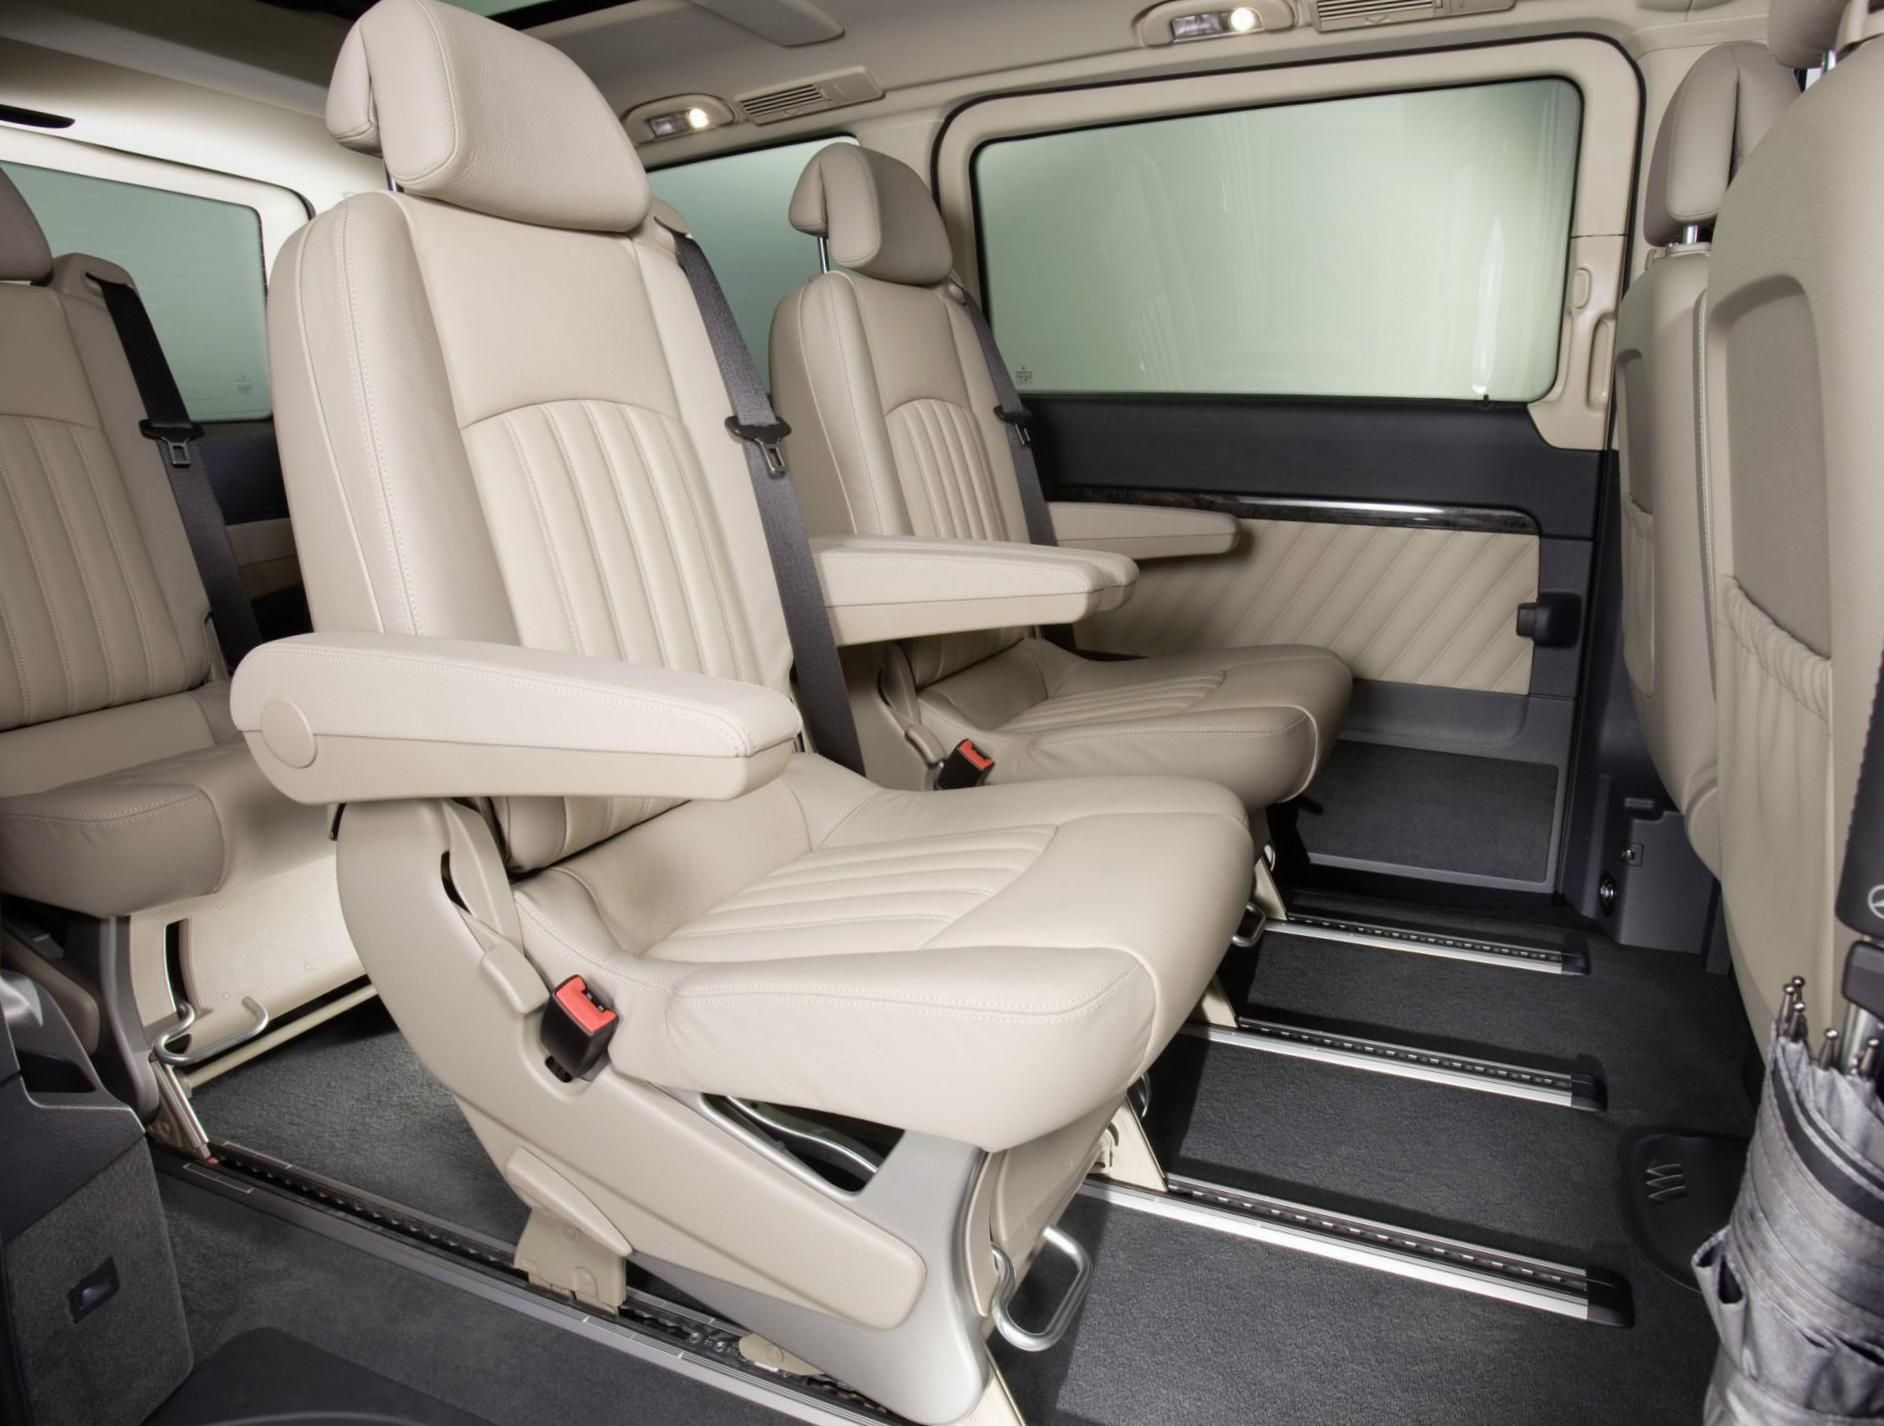 budapest airport transfer booking